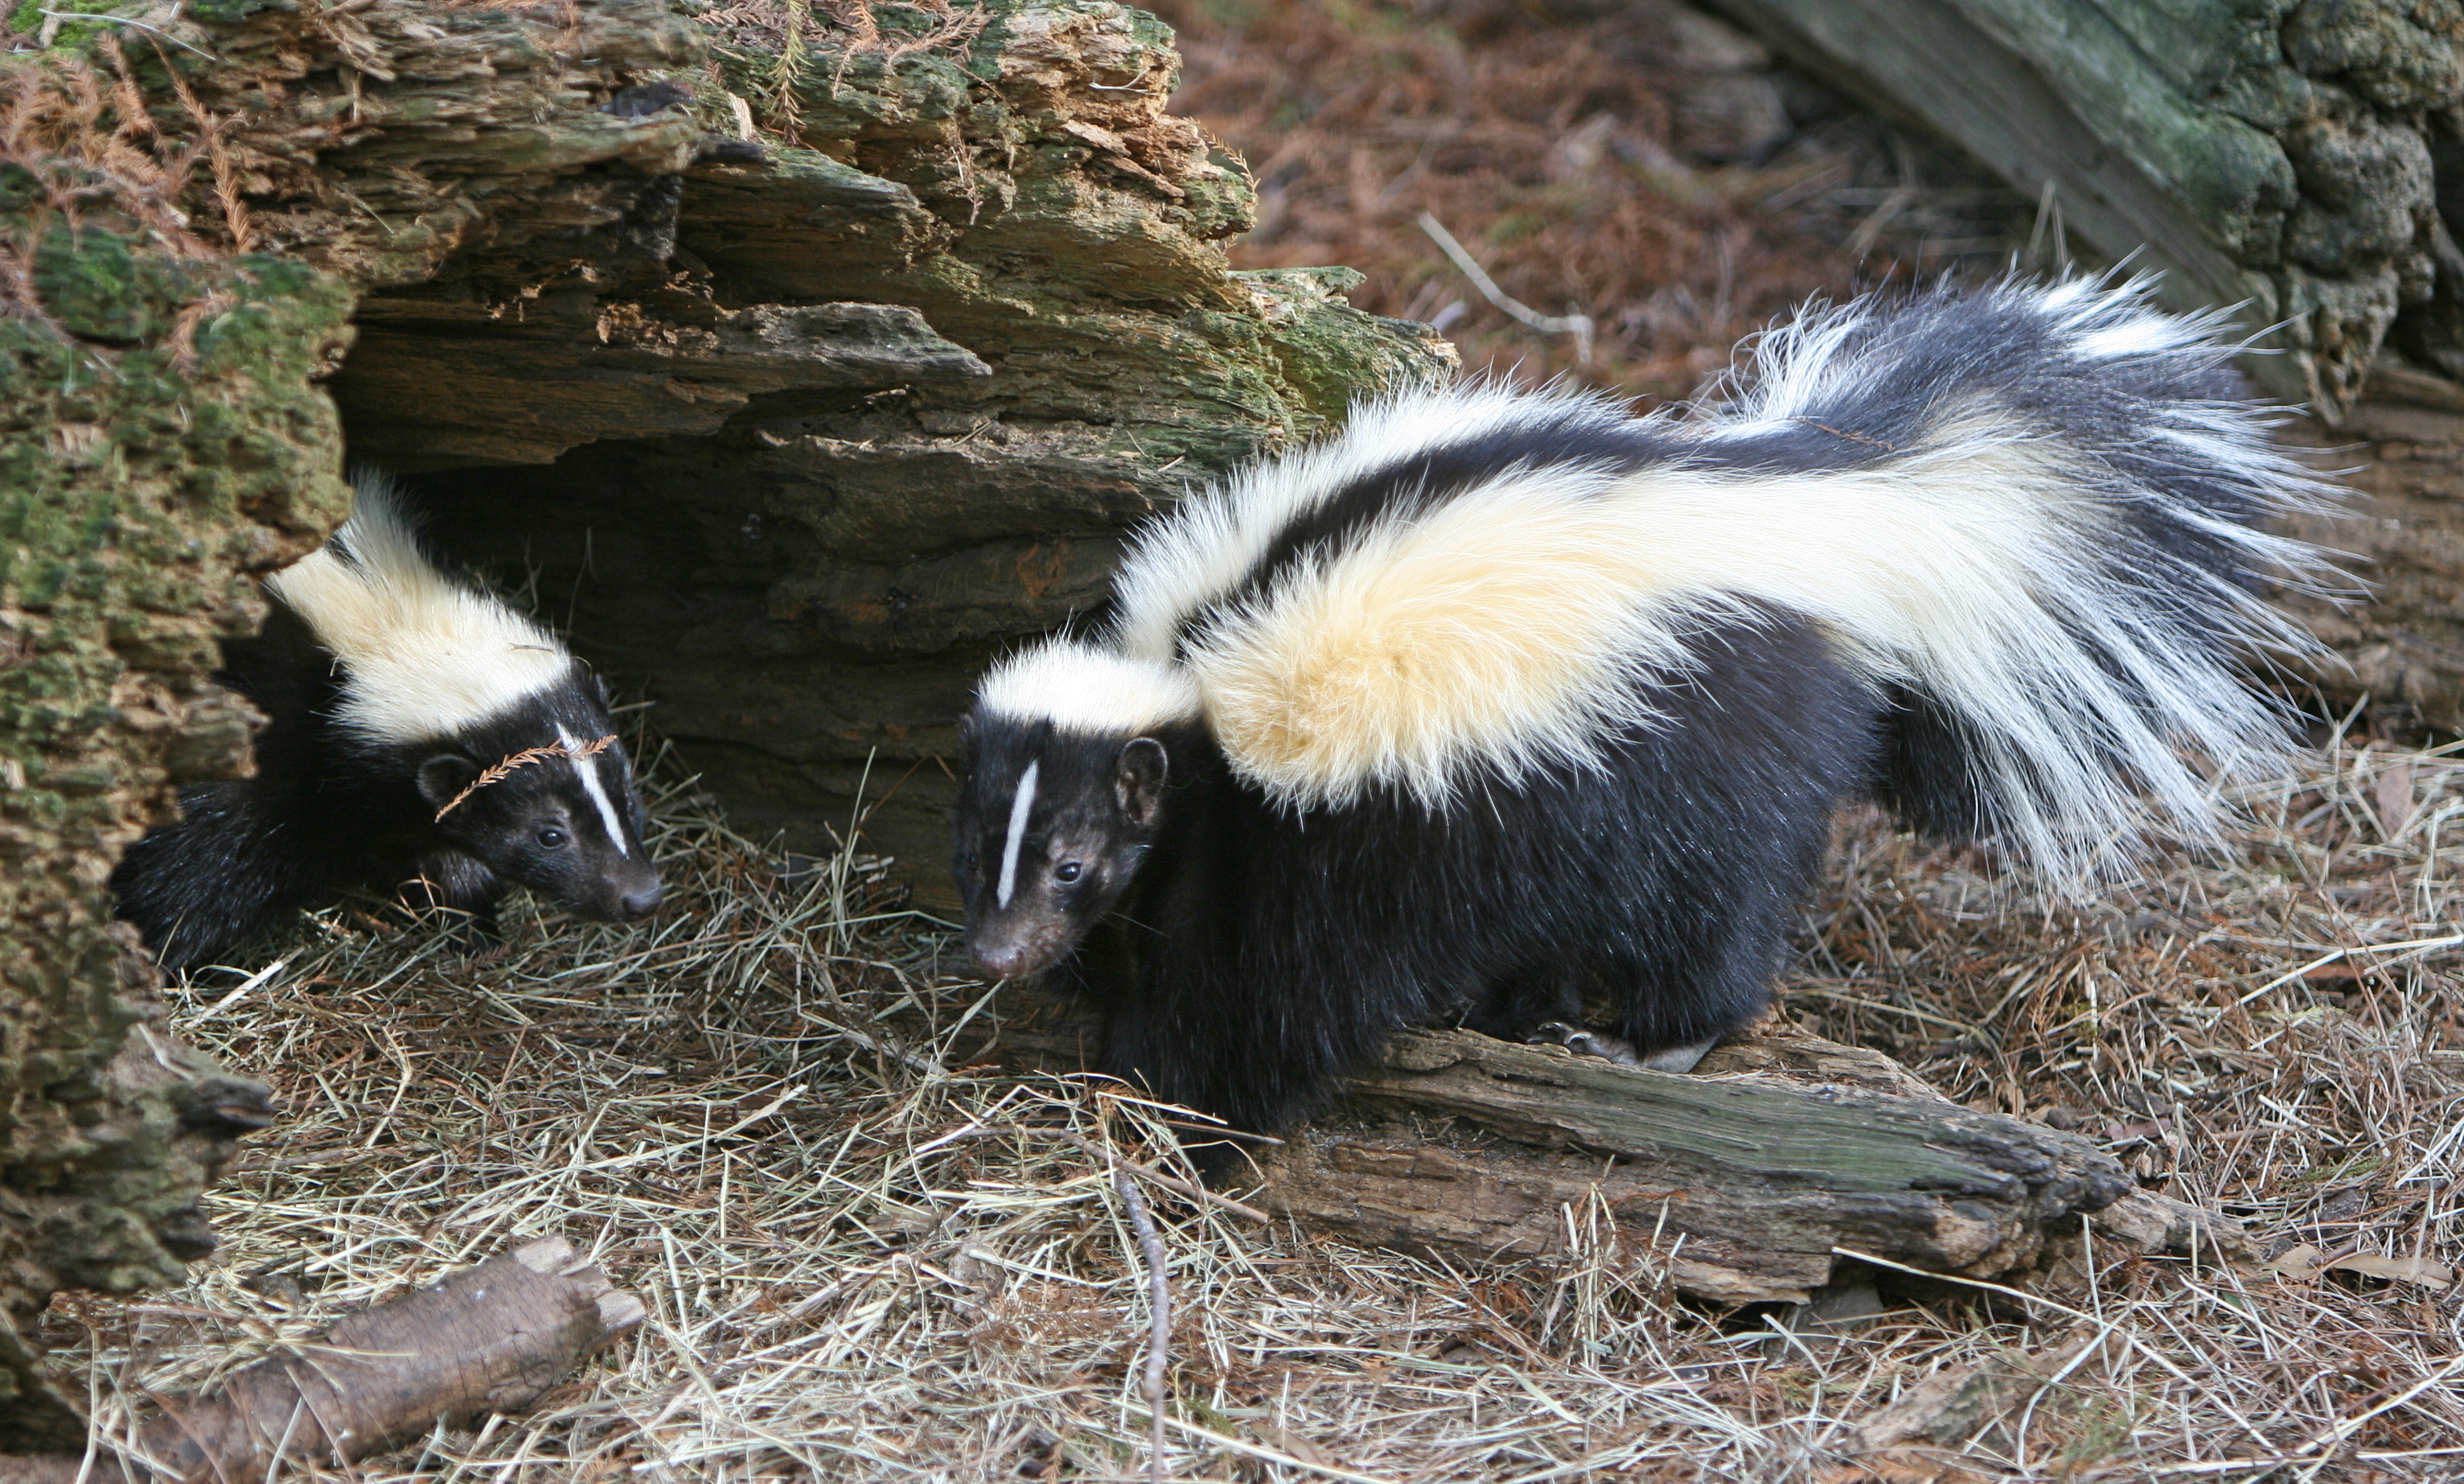 Skunk -  Creative Commons Attribution 3.0 Unported/ wikipedia: http://bit.ly/1cZ6Lfj